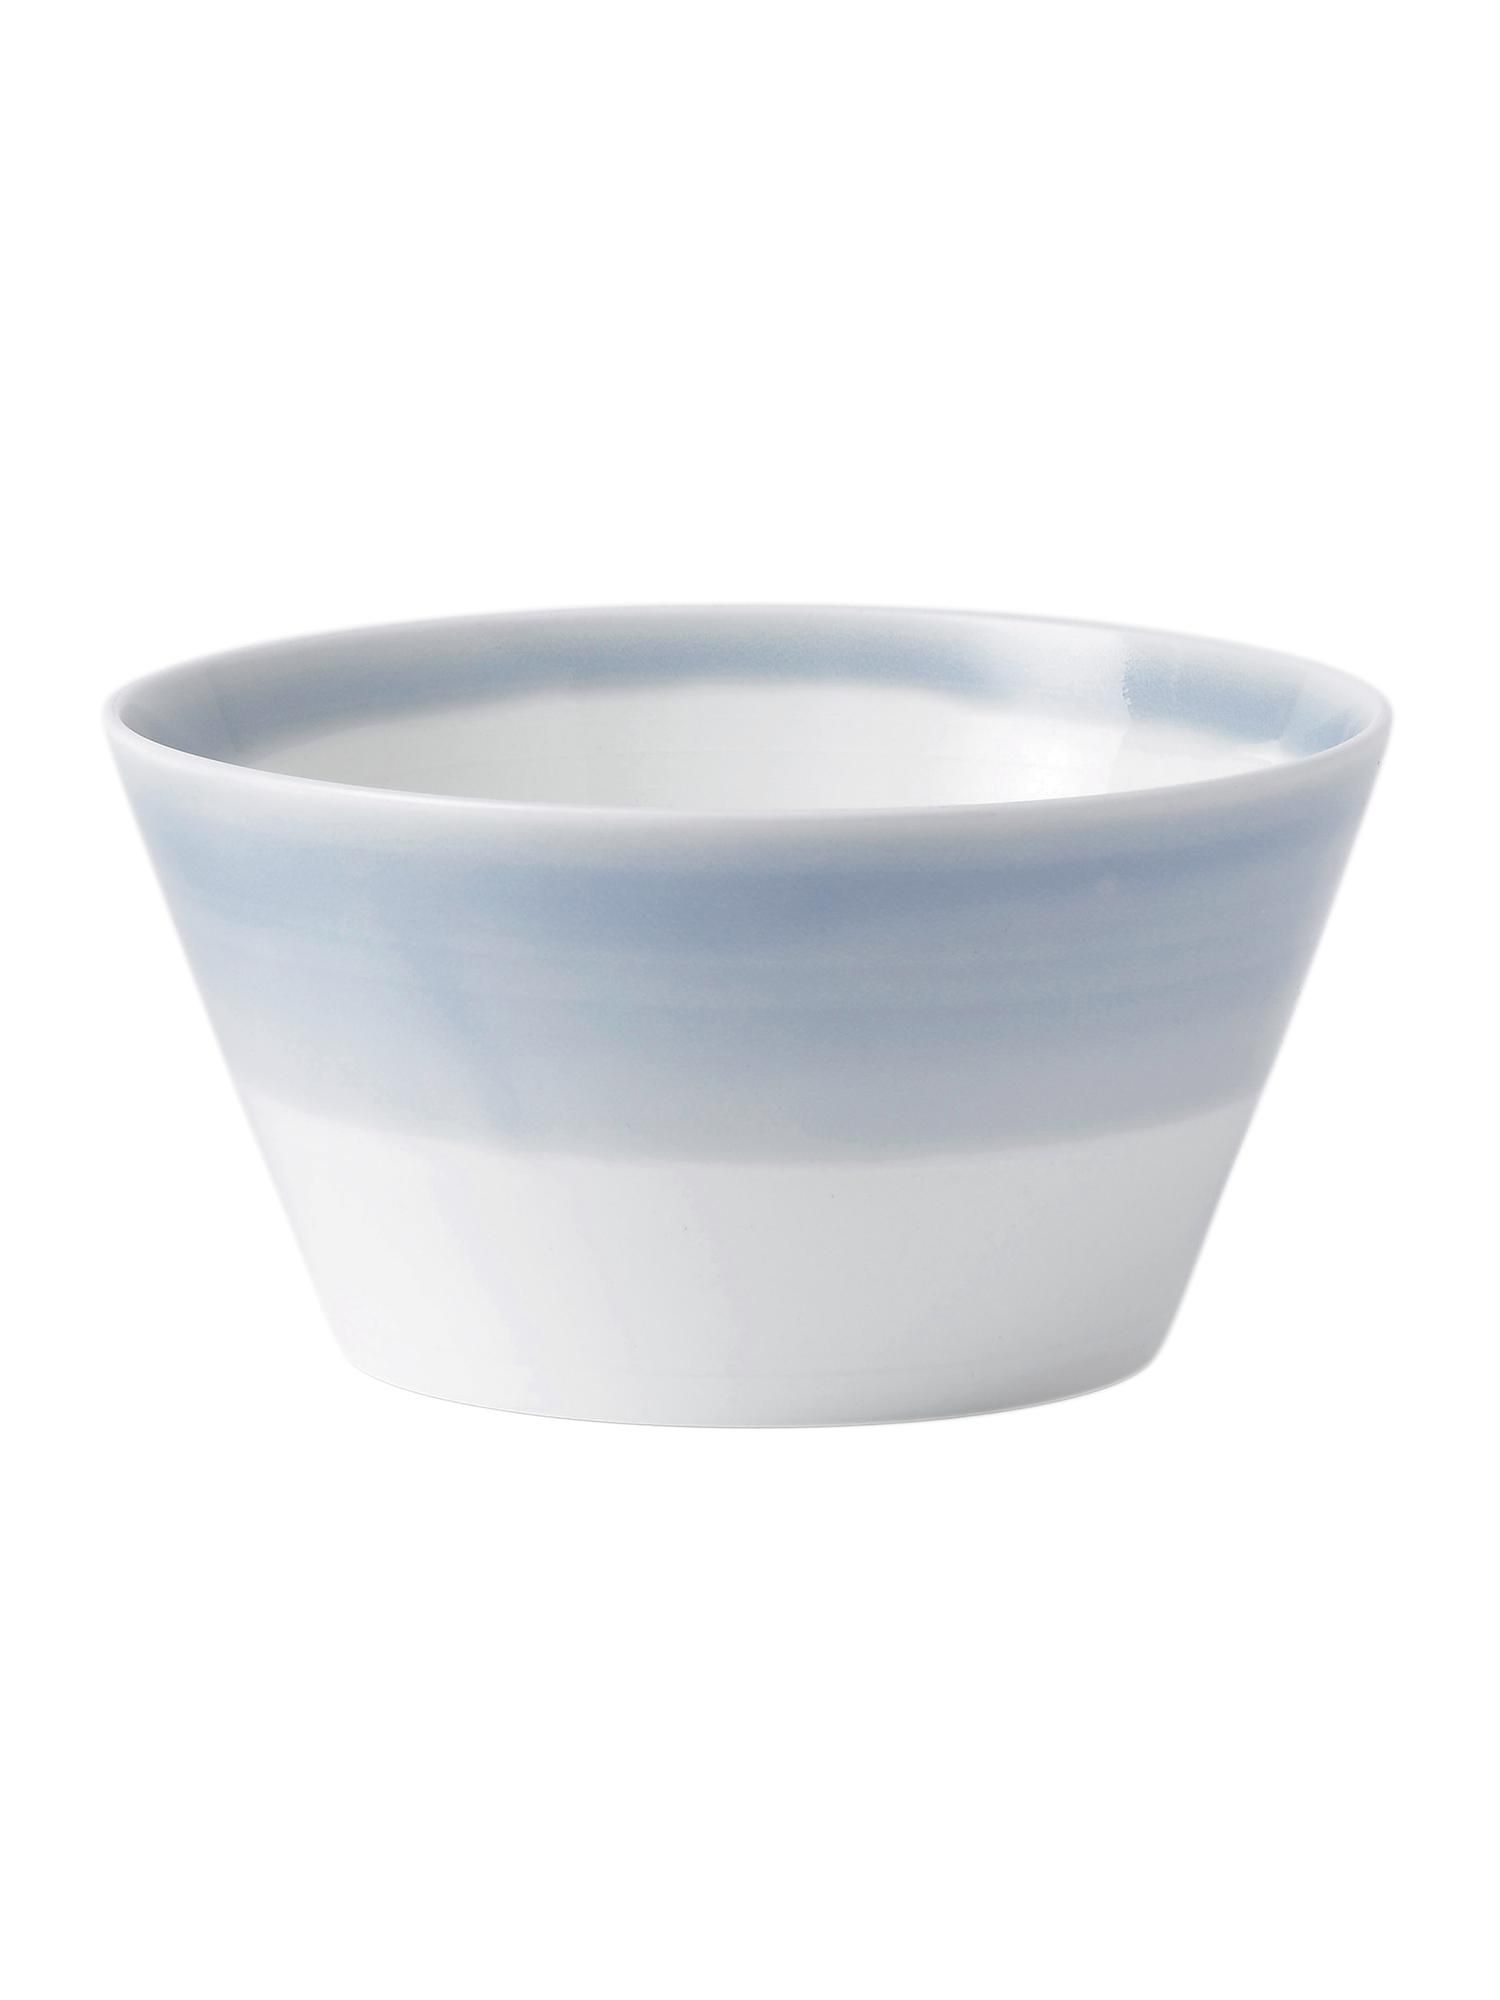 1815 blue cereal bowl 15cm